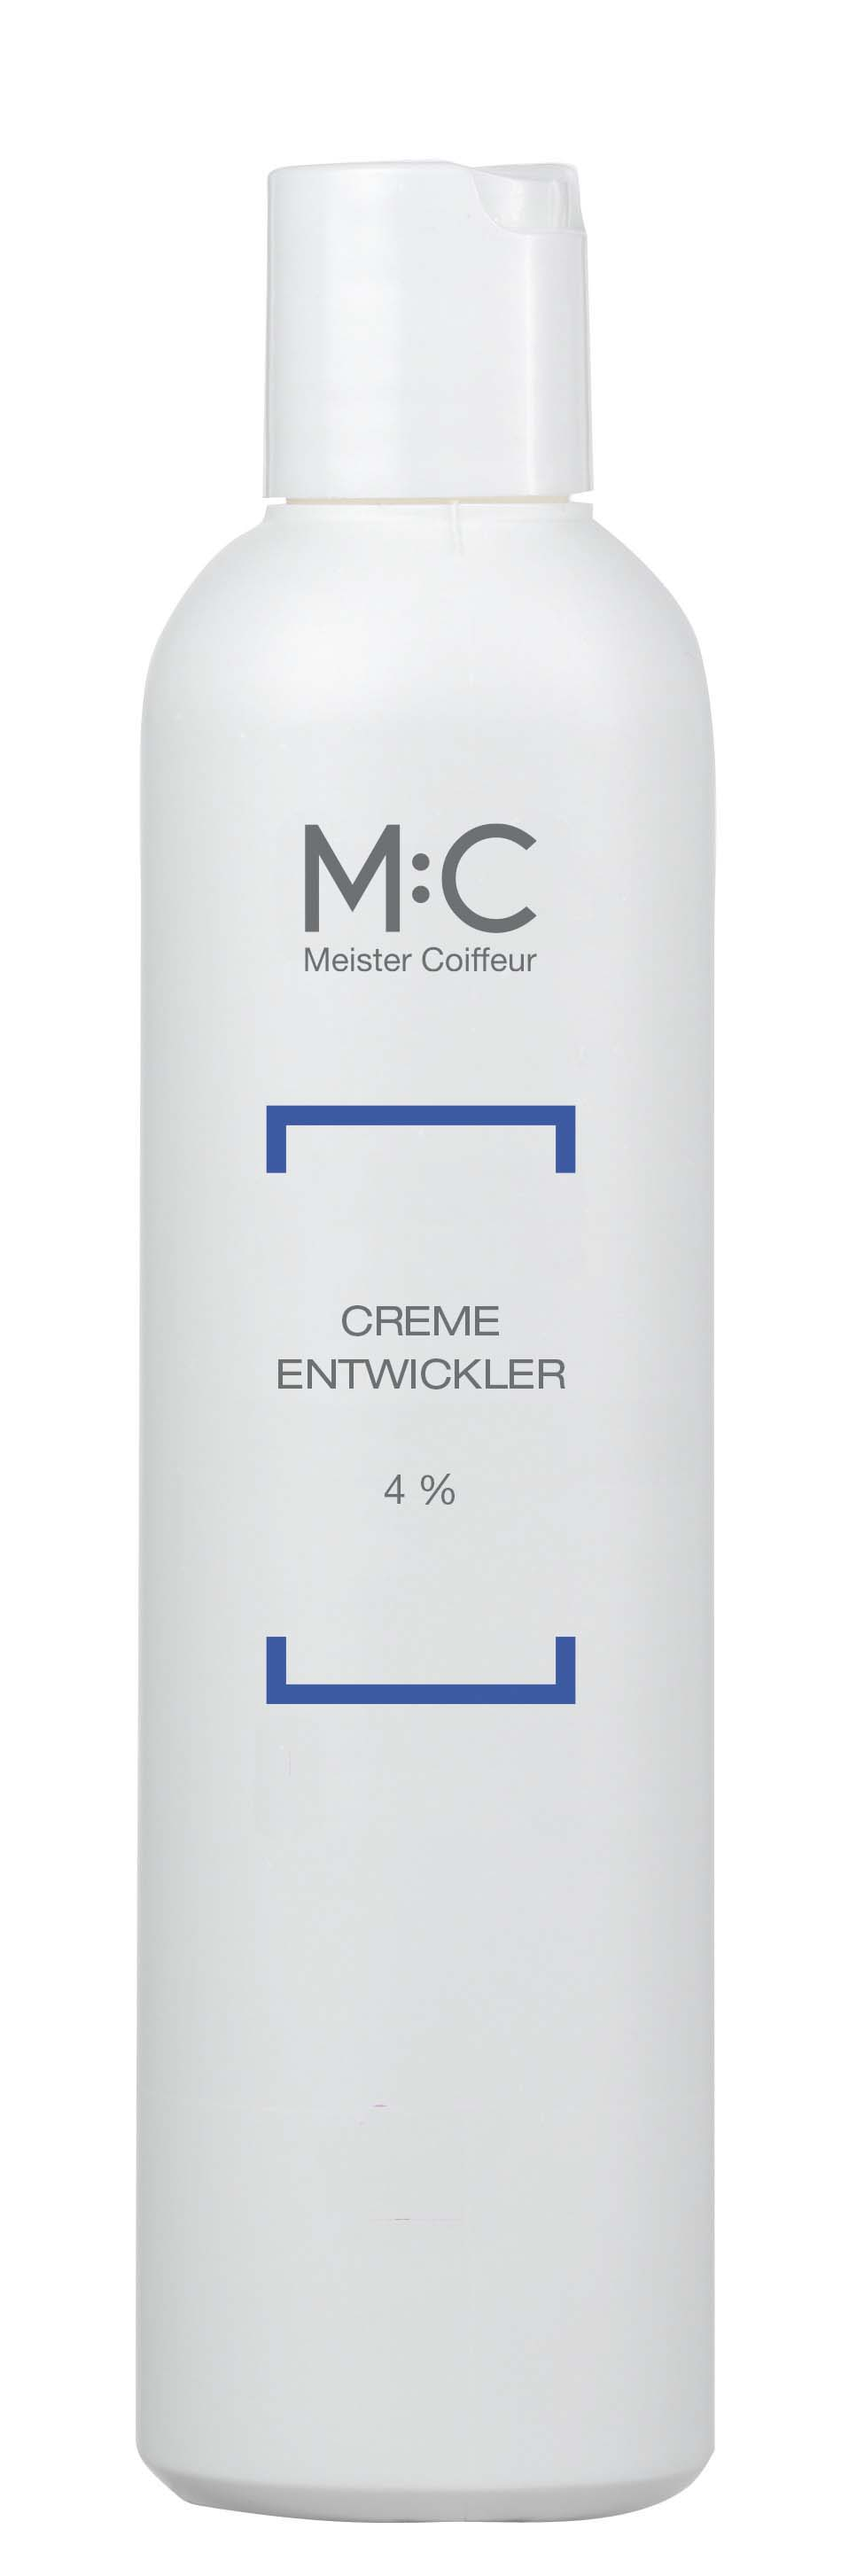 M:C Cream Developer 4,0% C 250 ml